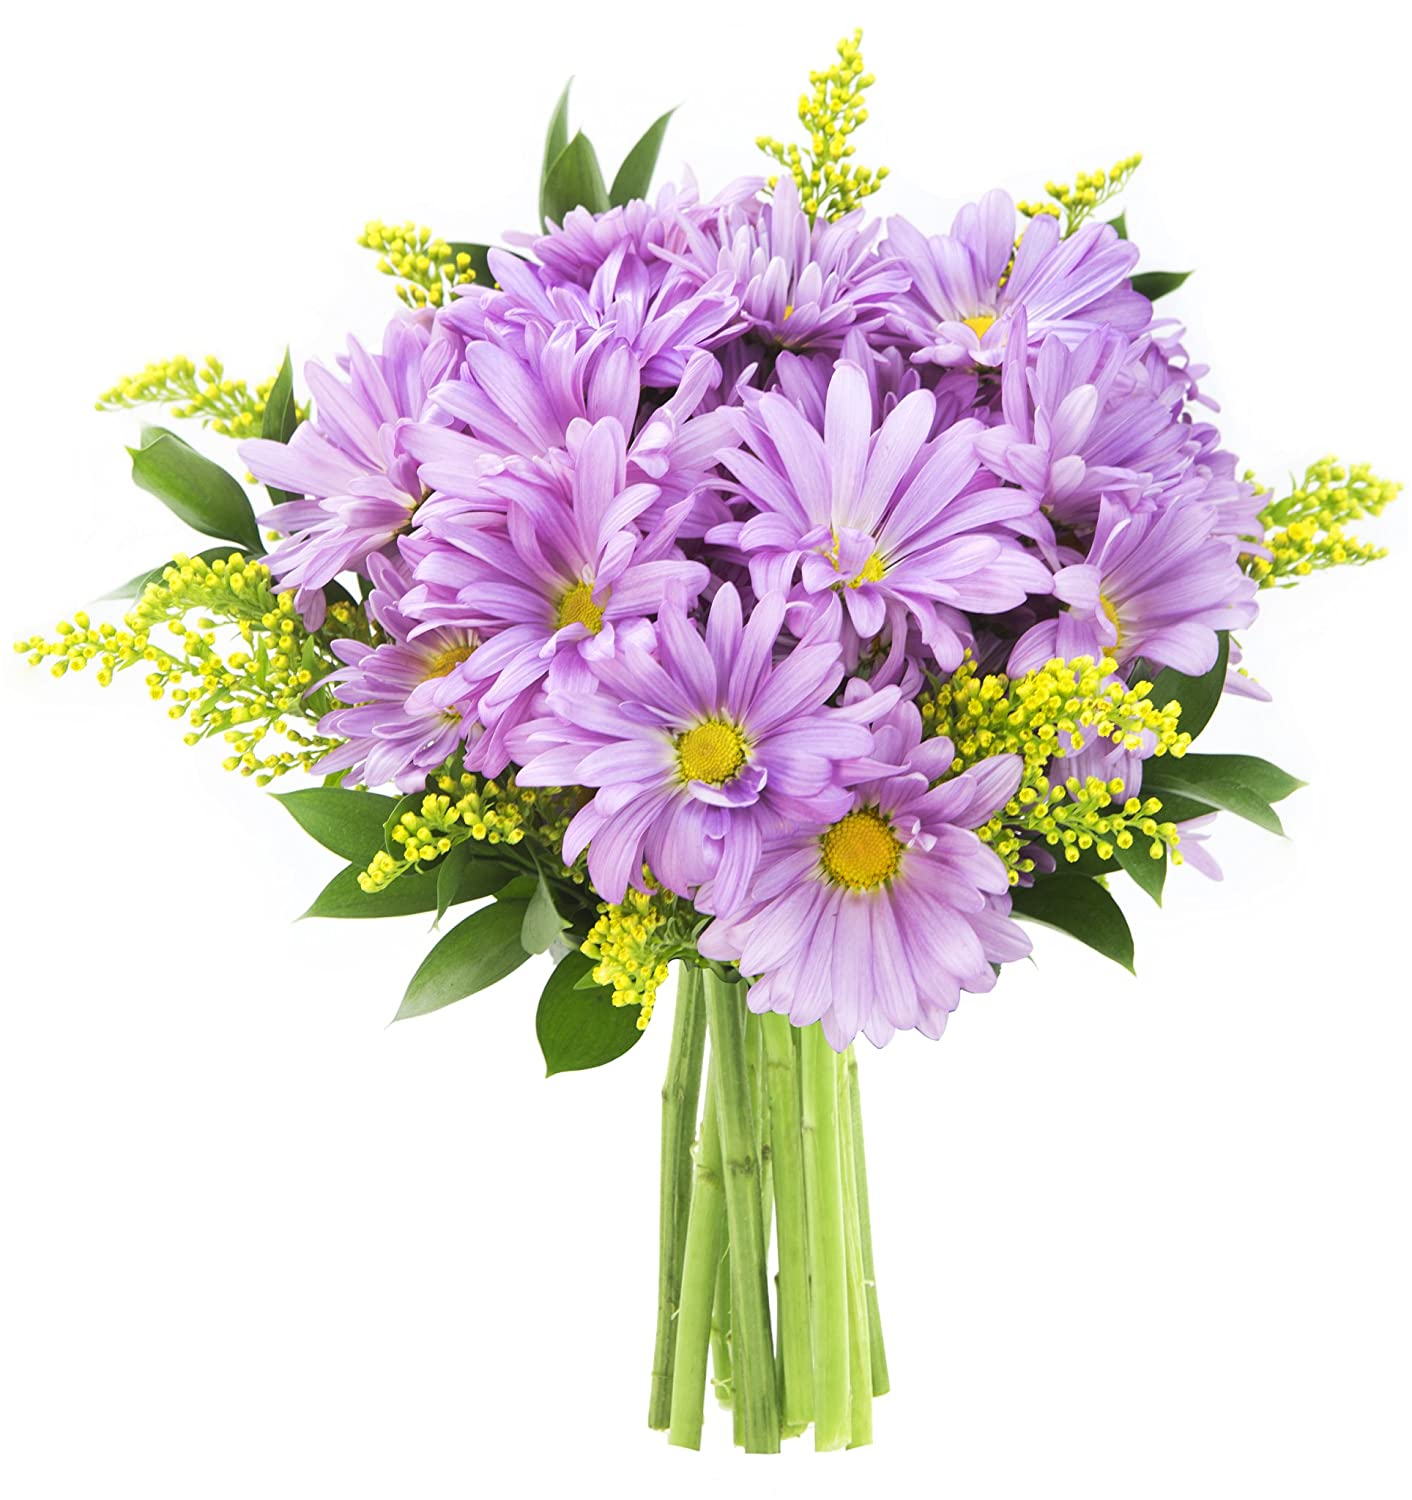 Lavender flower fields bouquet of purple daisy poms yellow solidago lavender flower fields bouquet of purple daisy poms yellow solidago aster and lush greens with vase amazon grocery gourmet food izmirmasajfo